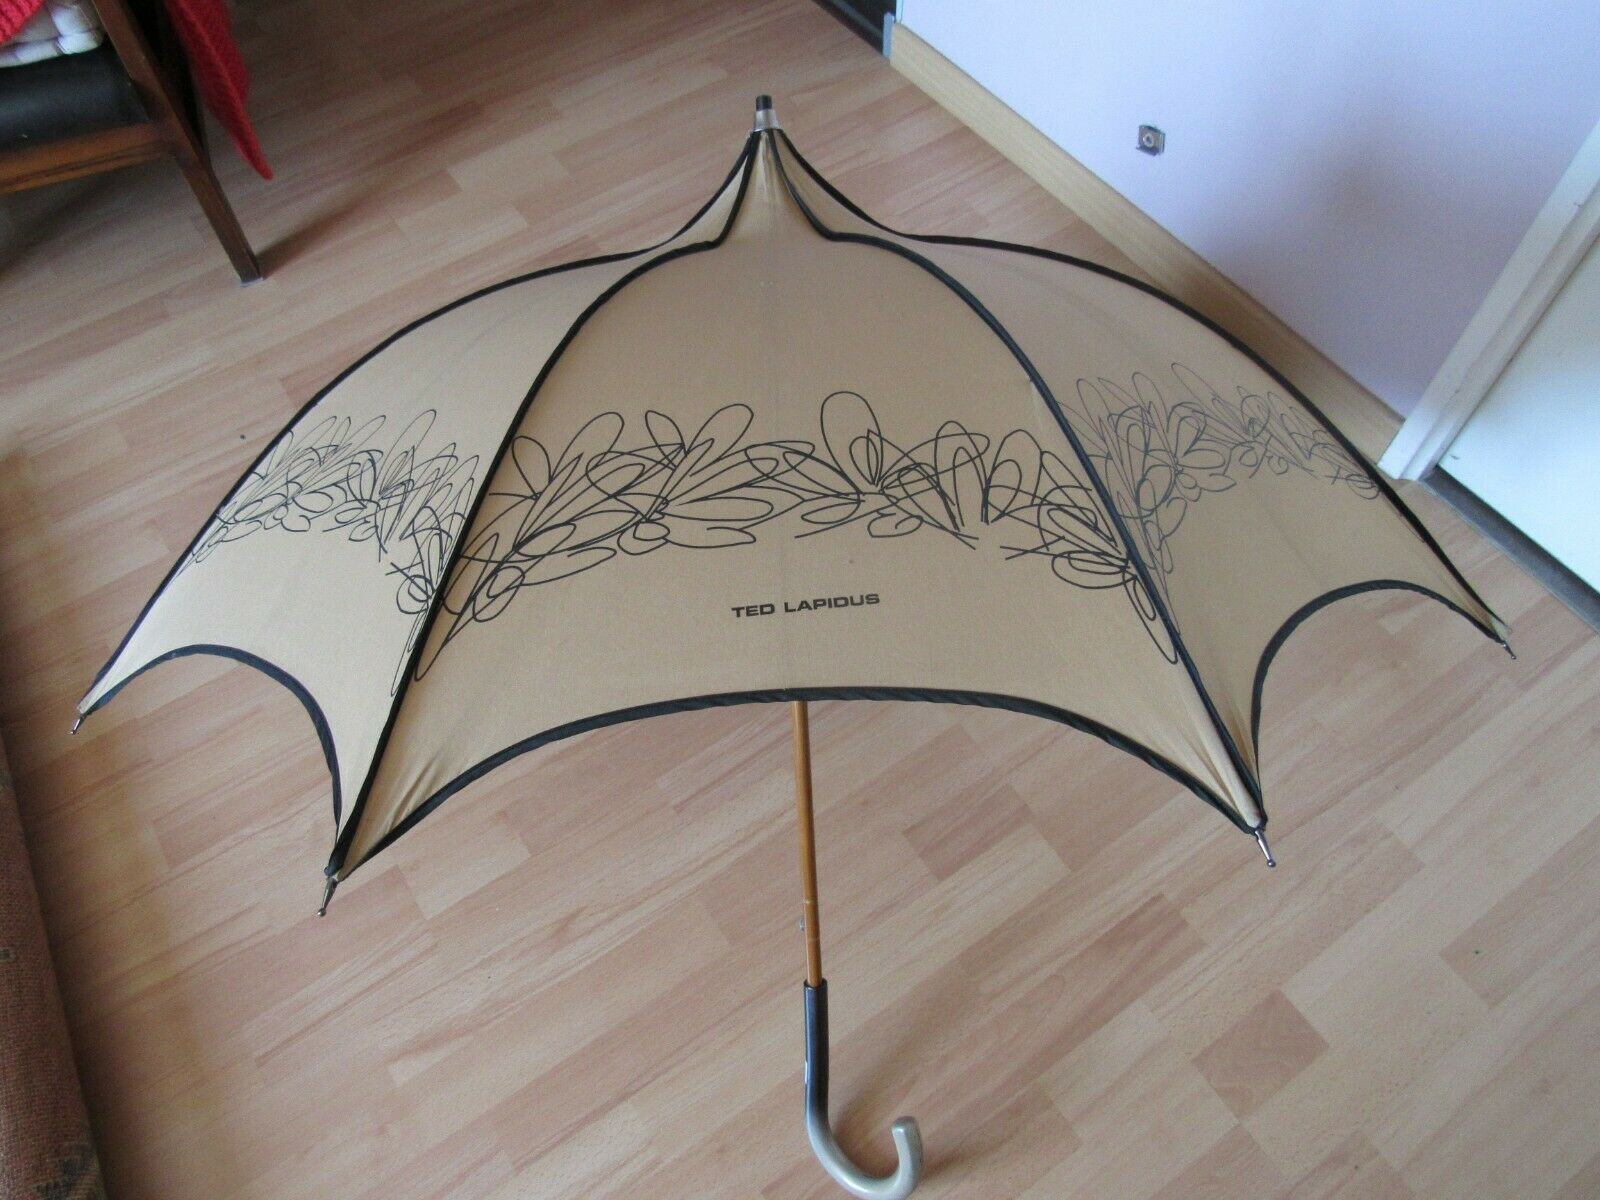 Ted lapidus parapluie canne pagode beige